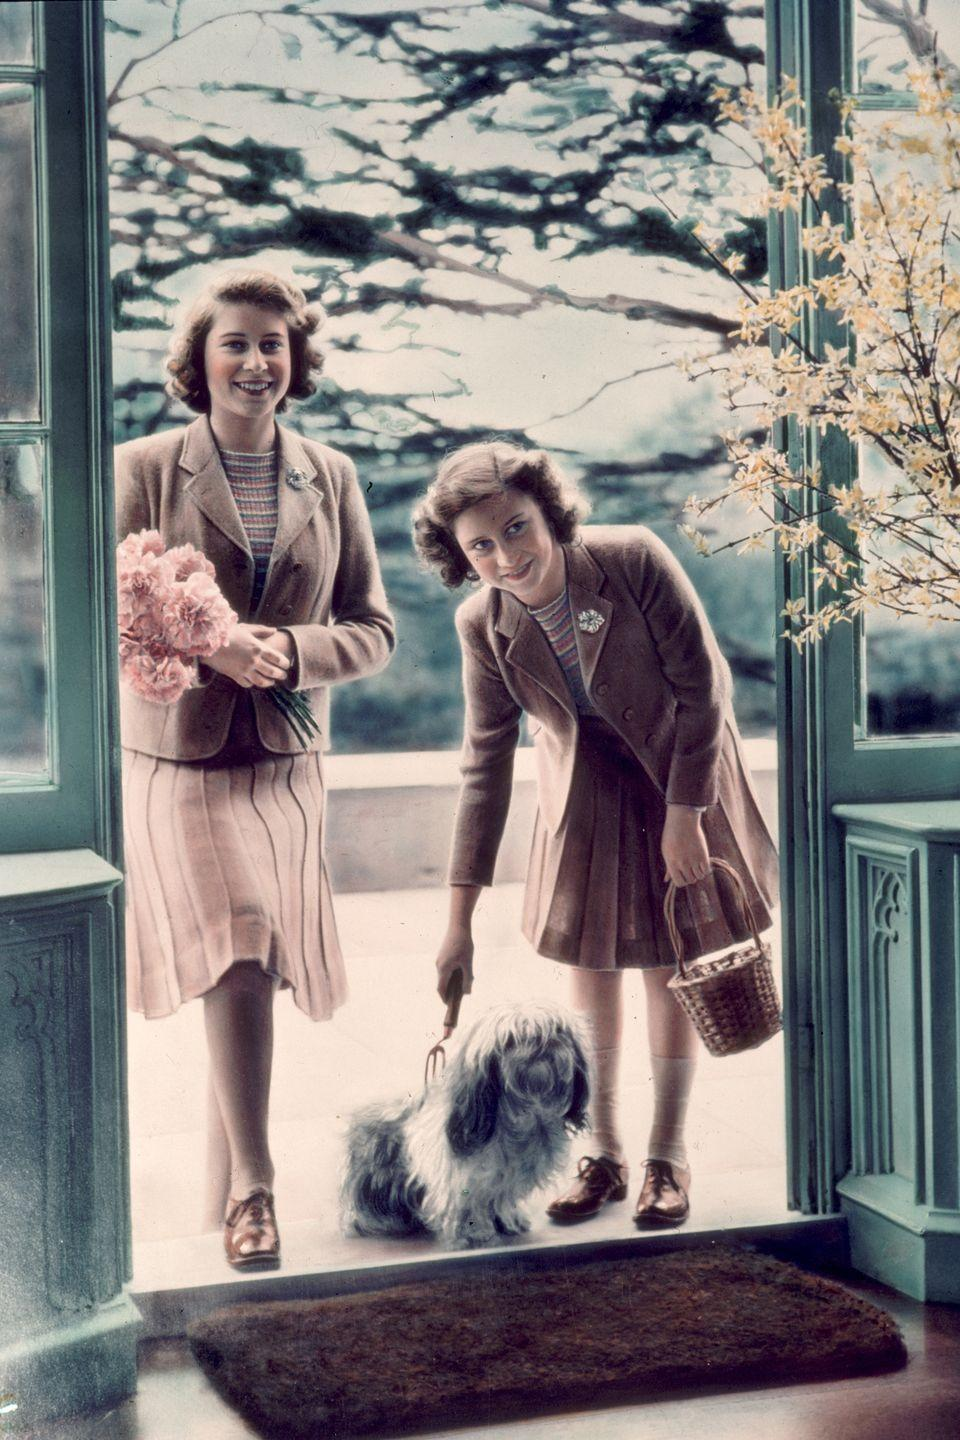 <p>Here she is with her sister Princess Margaret (right) and an adorable lhaso apso pup at the Royal Lodge in Windsor.<br></p>